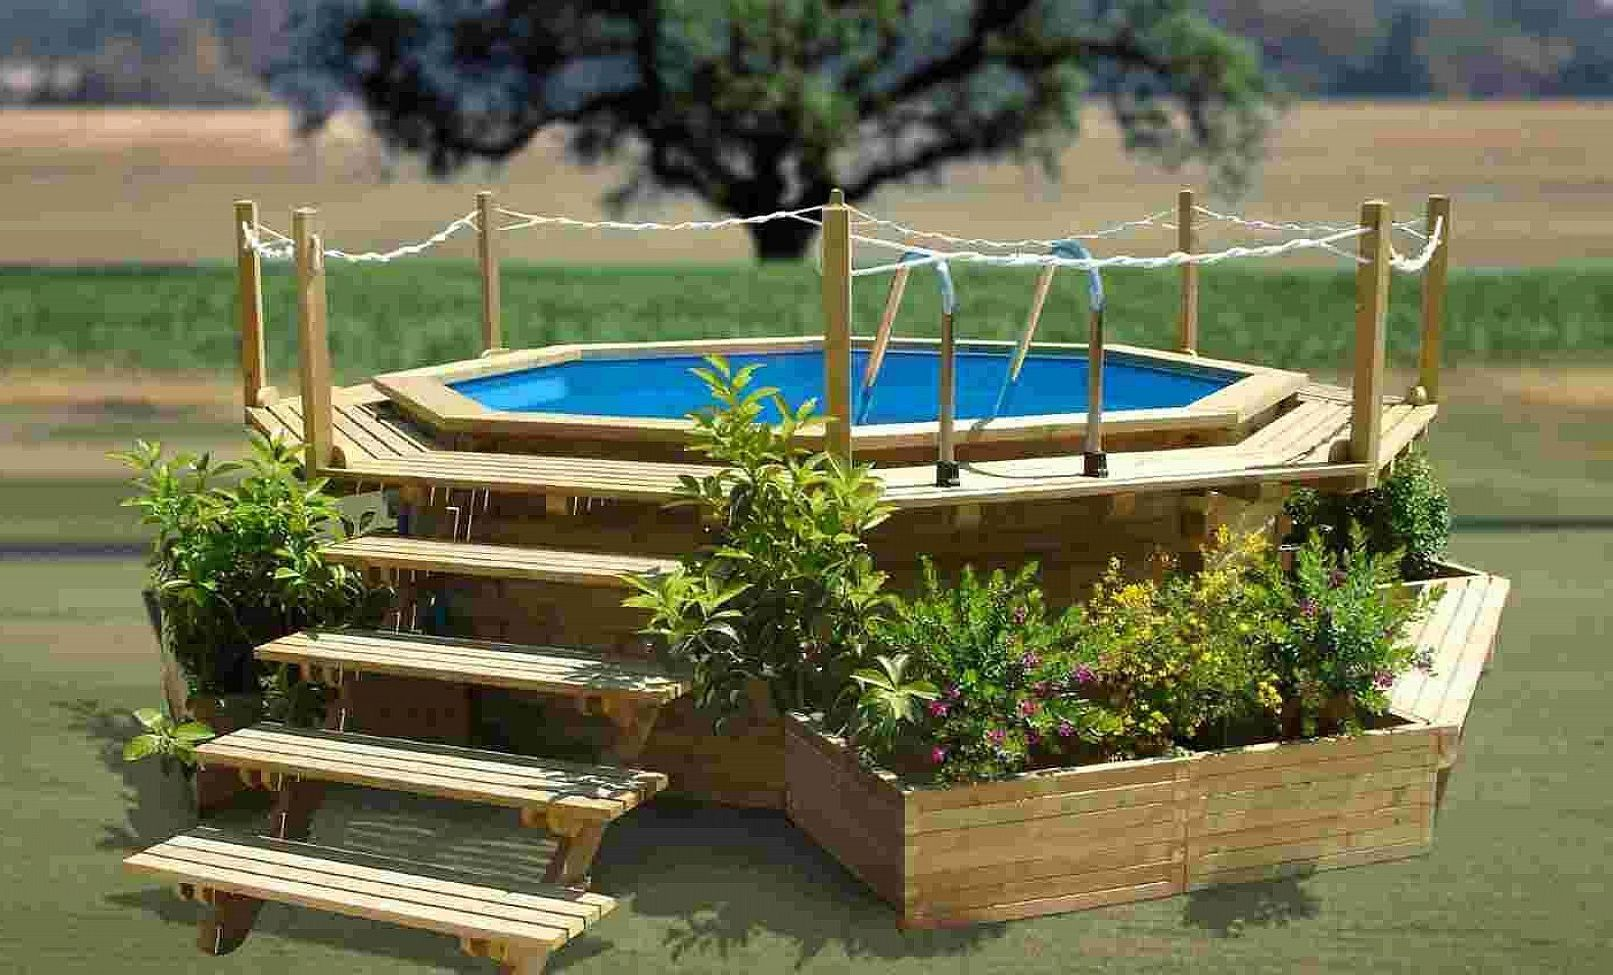 Outdoor attractive small swimming pool ideas wooden - Small above ground pool ideas ...